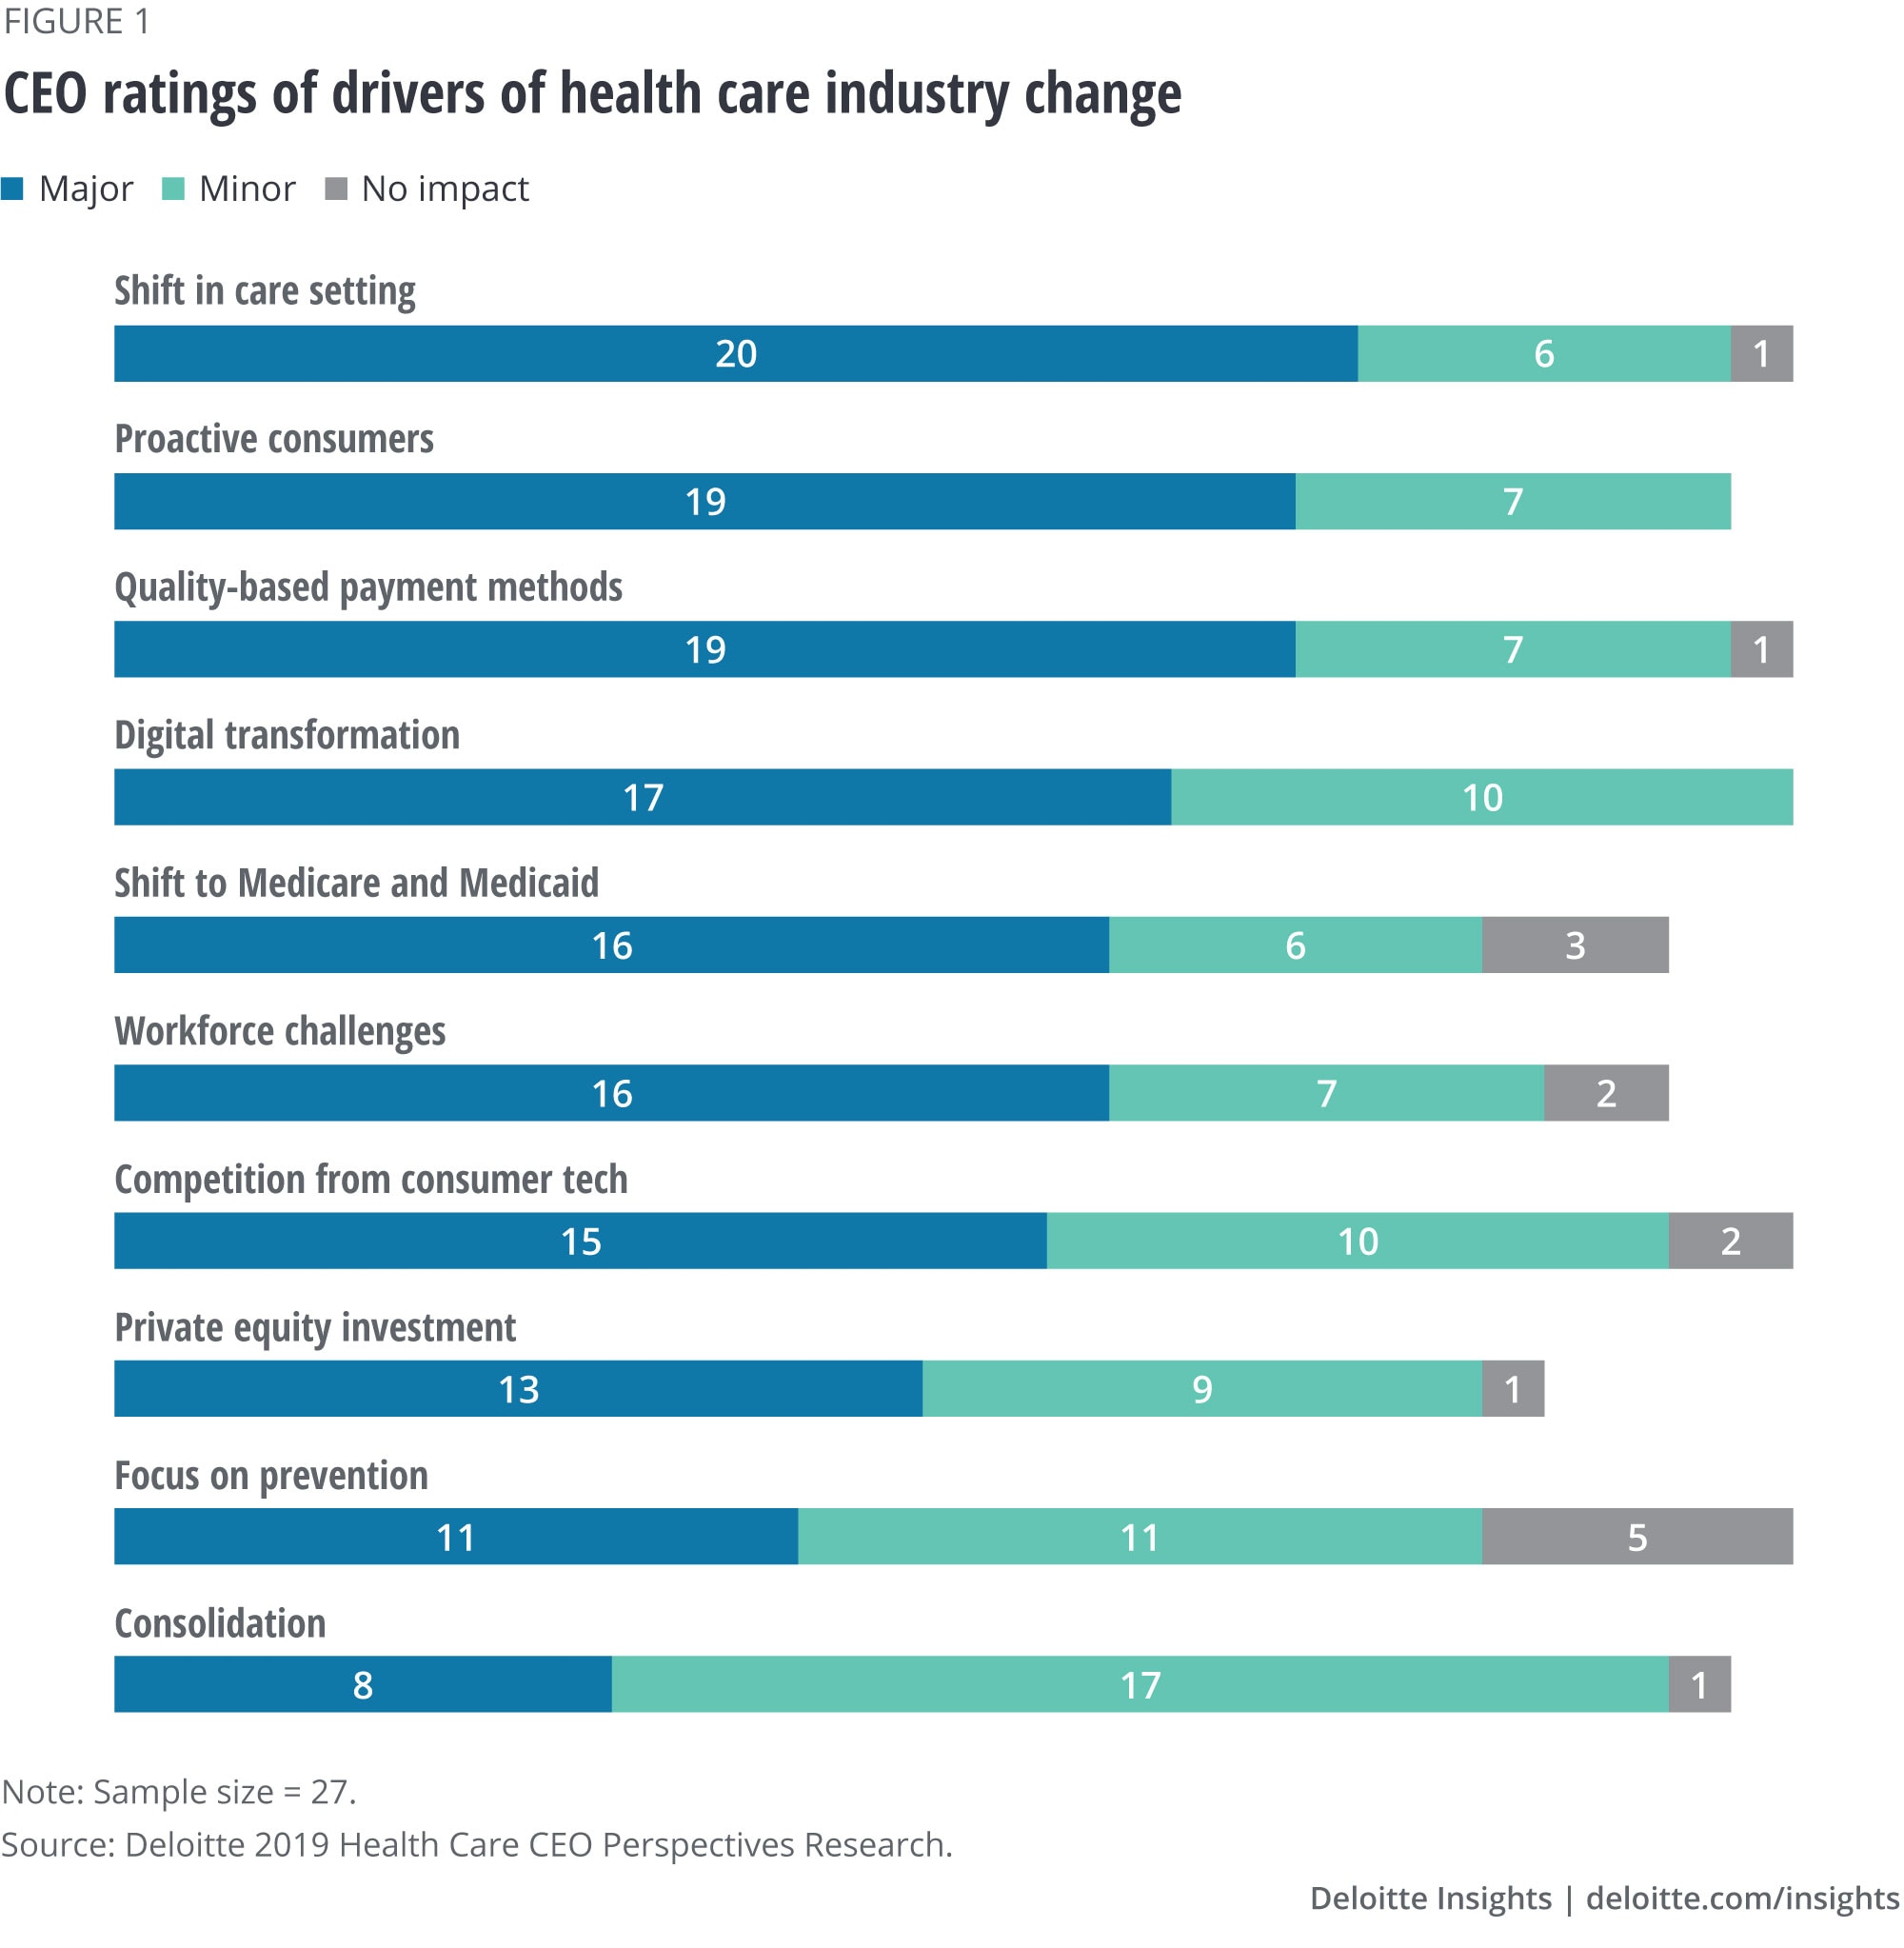 CEO ratings of drivers of health care industry change